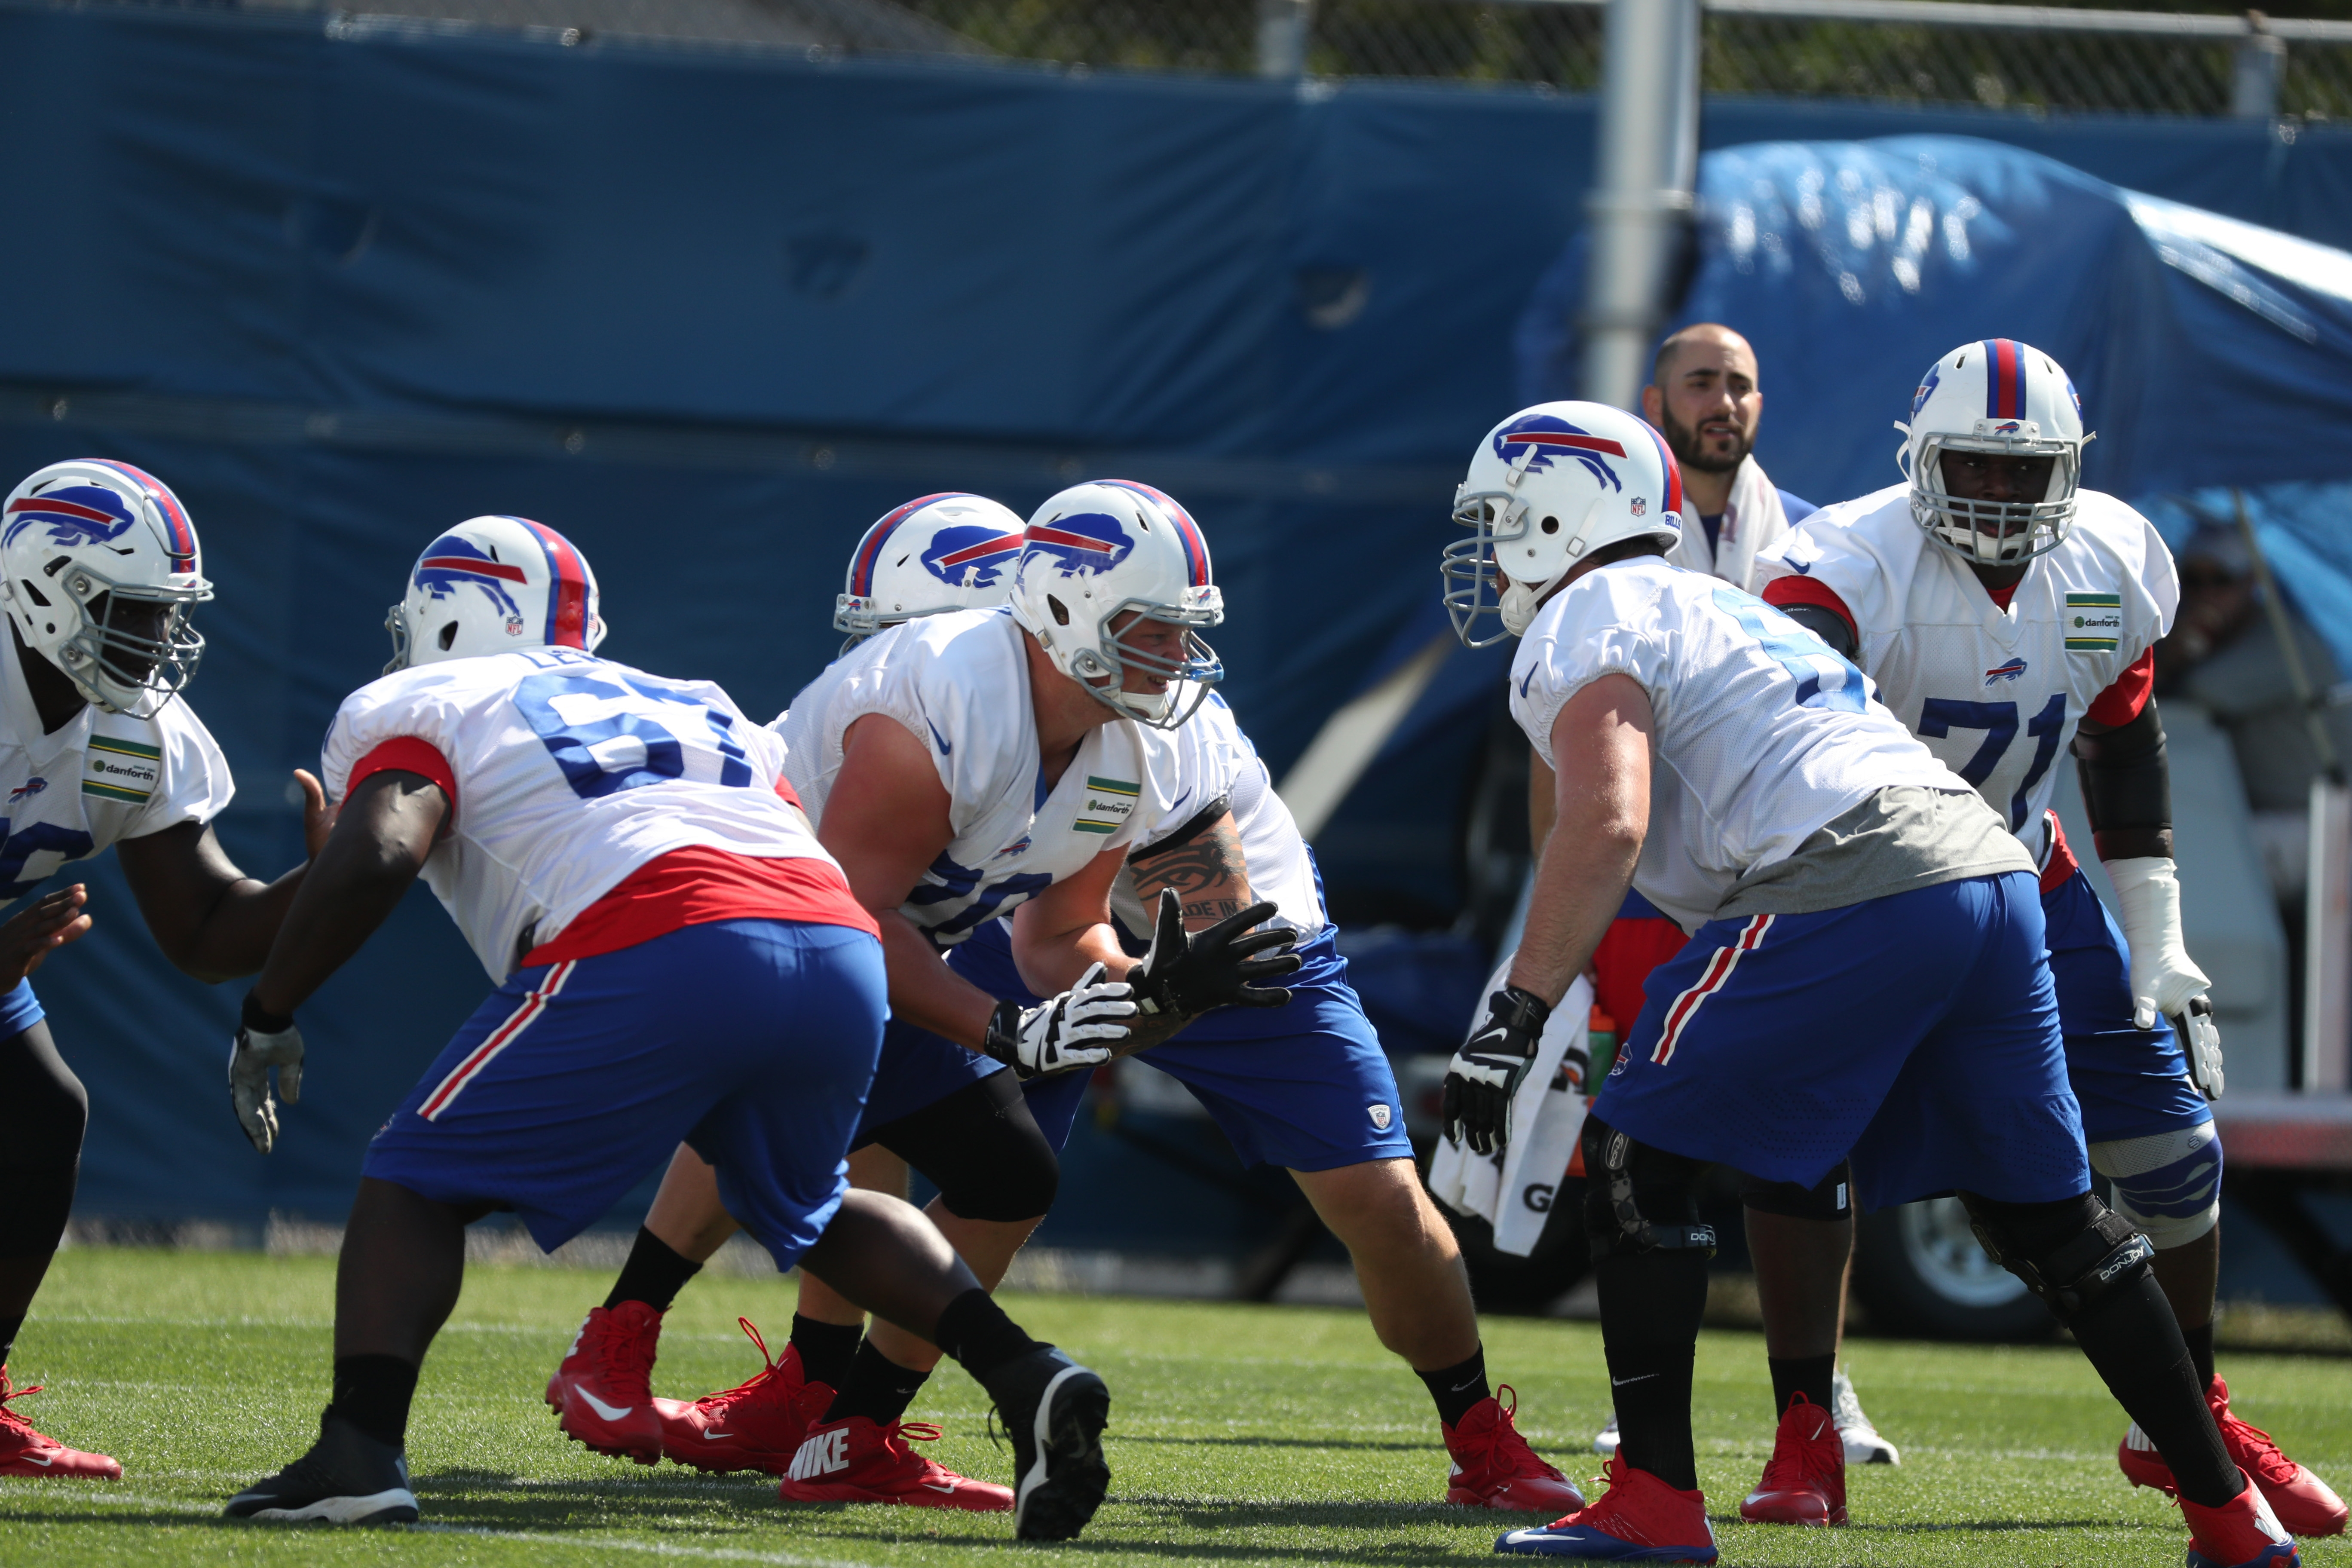 Buffalo Bills offensive line works on a blocking drill during Tuesday's practice.